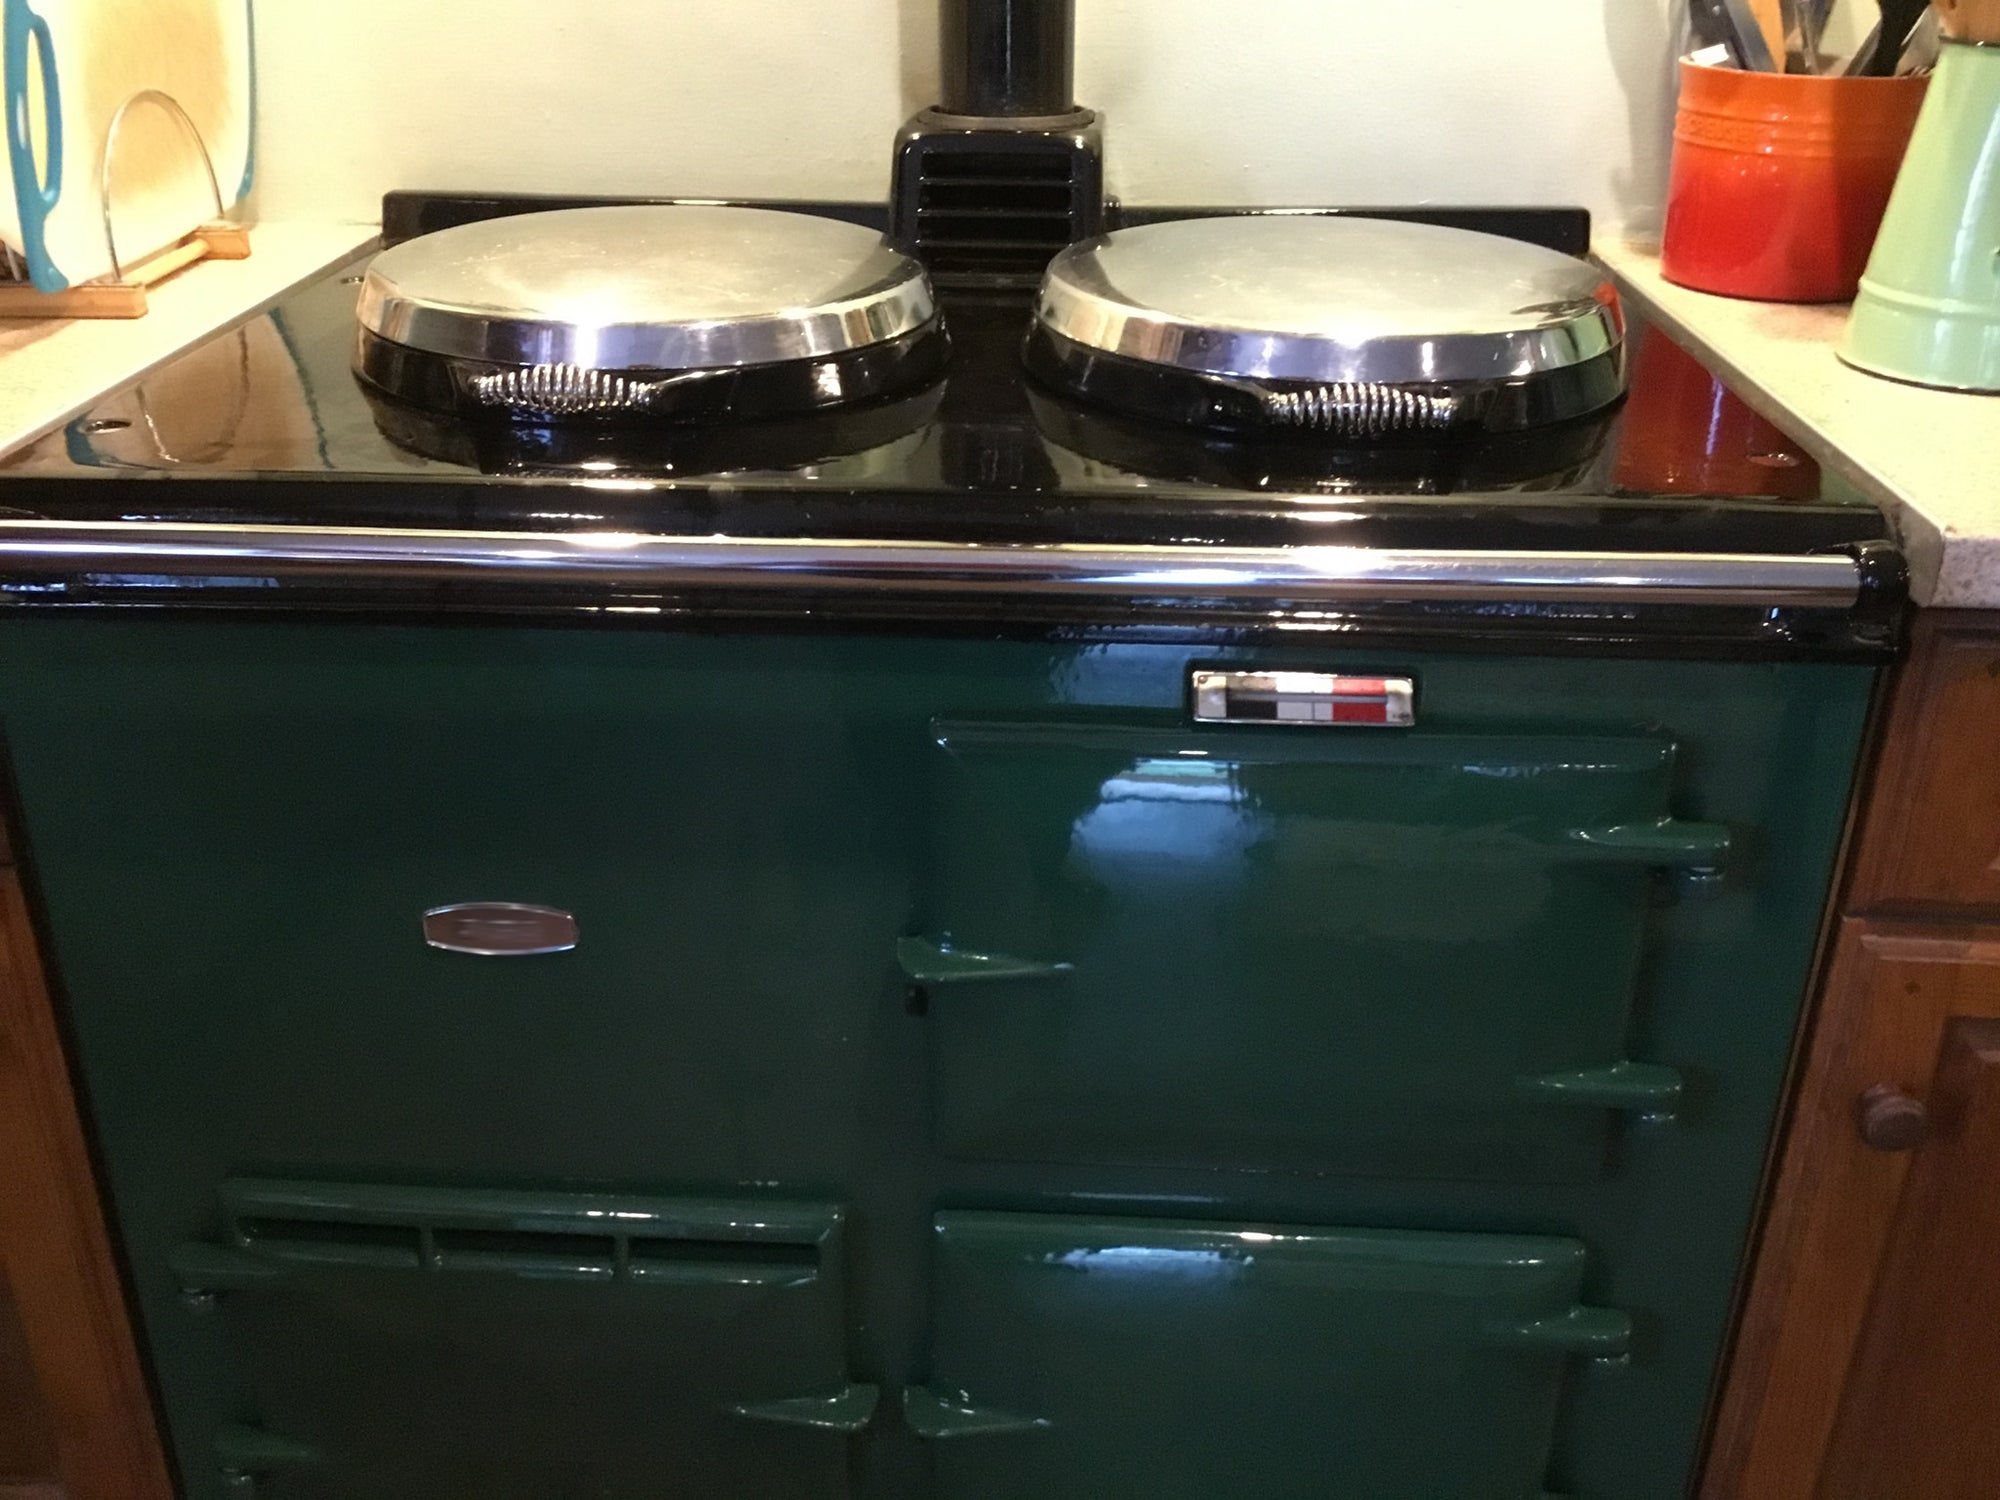 Before & after cleaning a green Aga range cooker